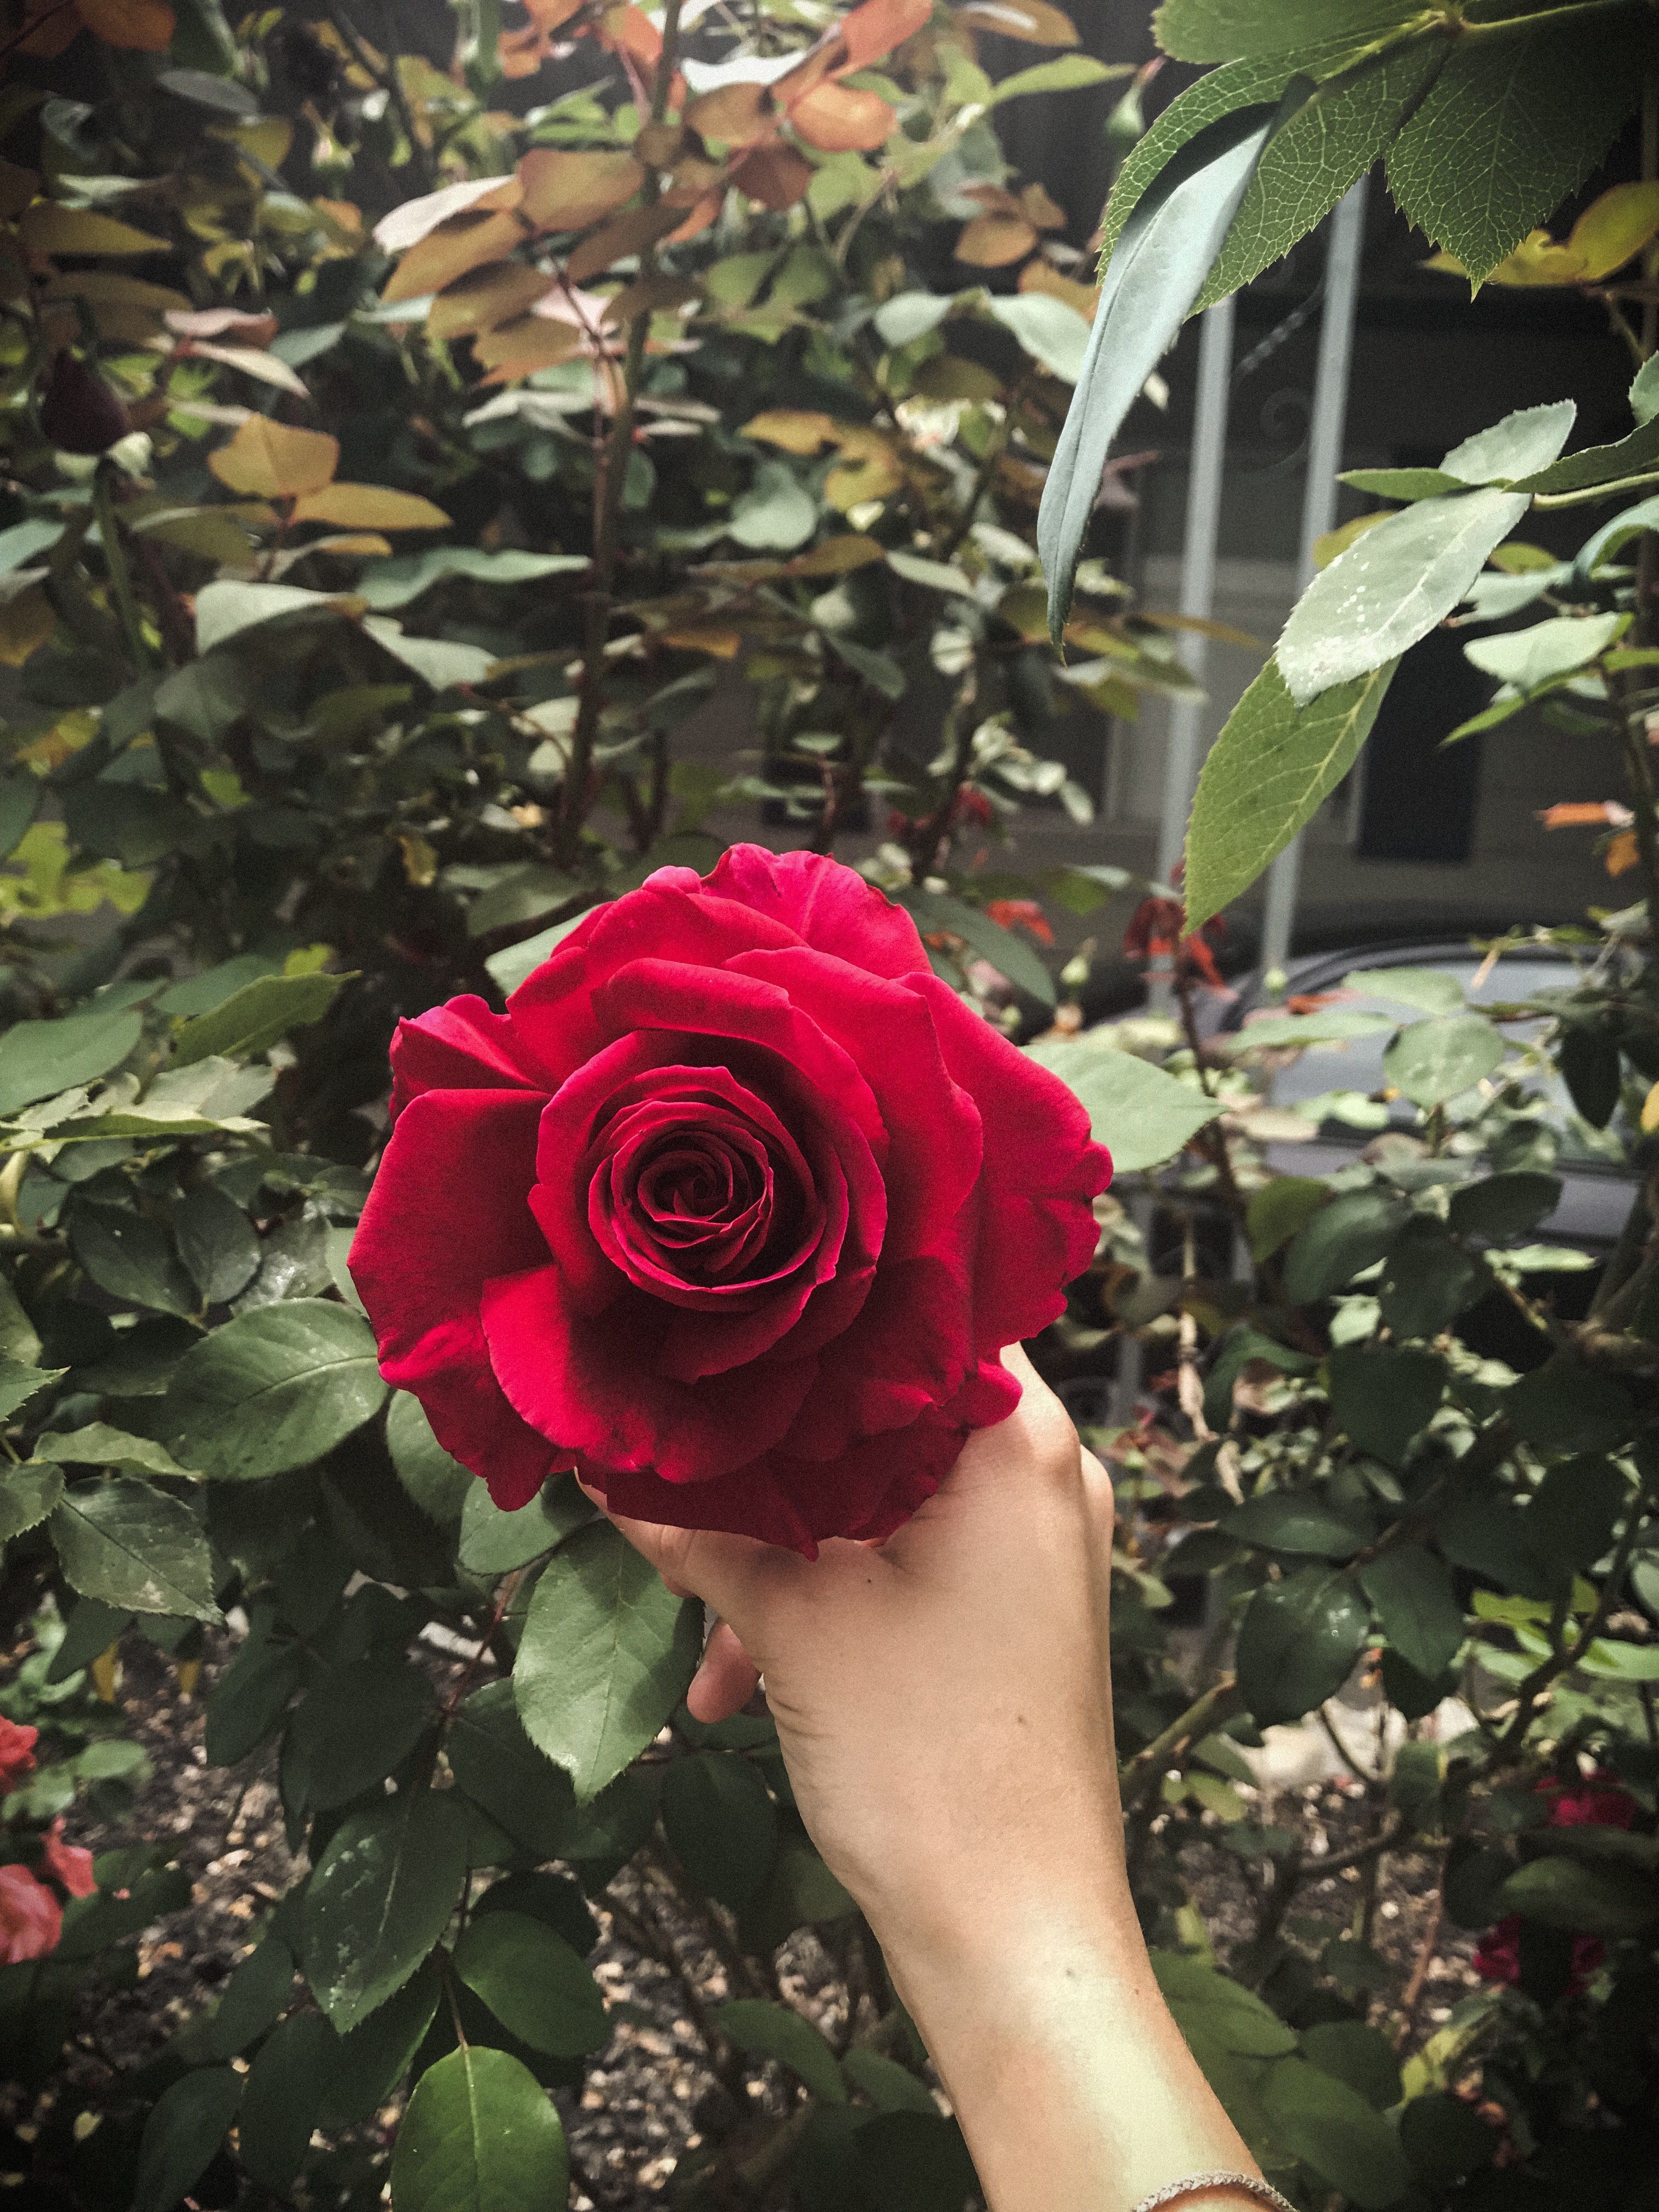 Pin By Nada Ayed ندى On My Pics Love Rose Flower Beautiful Roses Beautiful Flowers